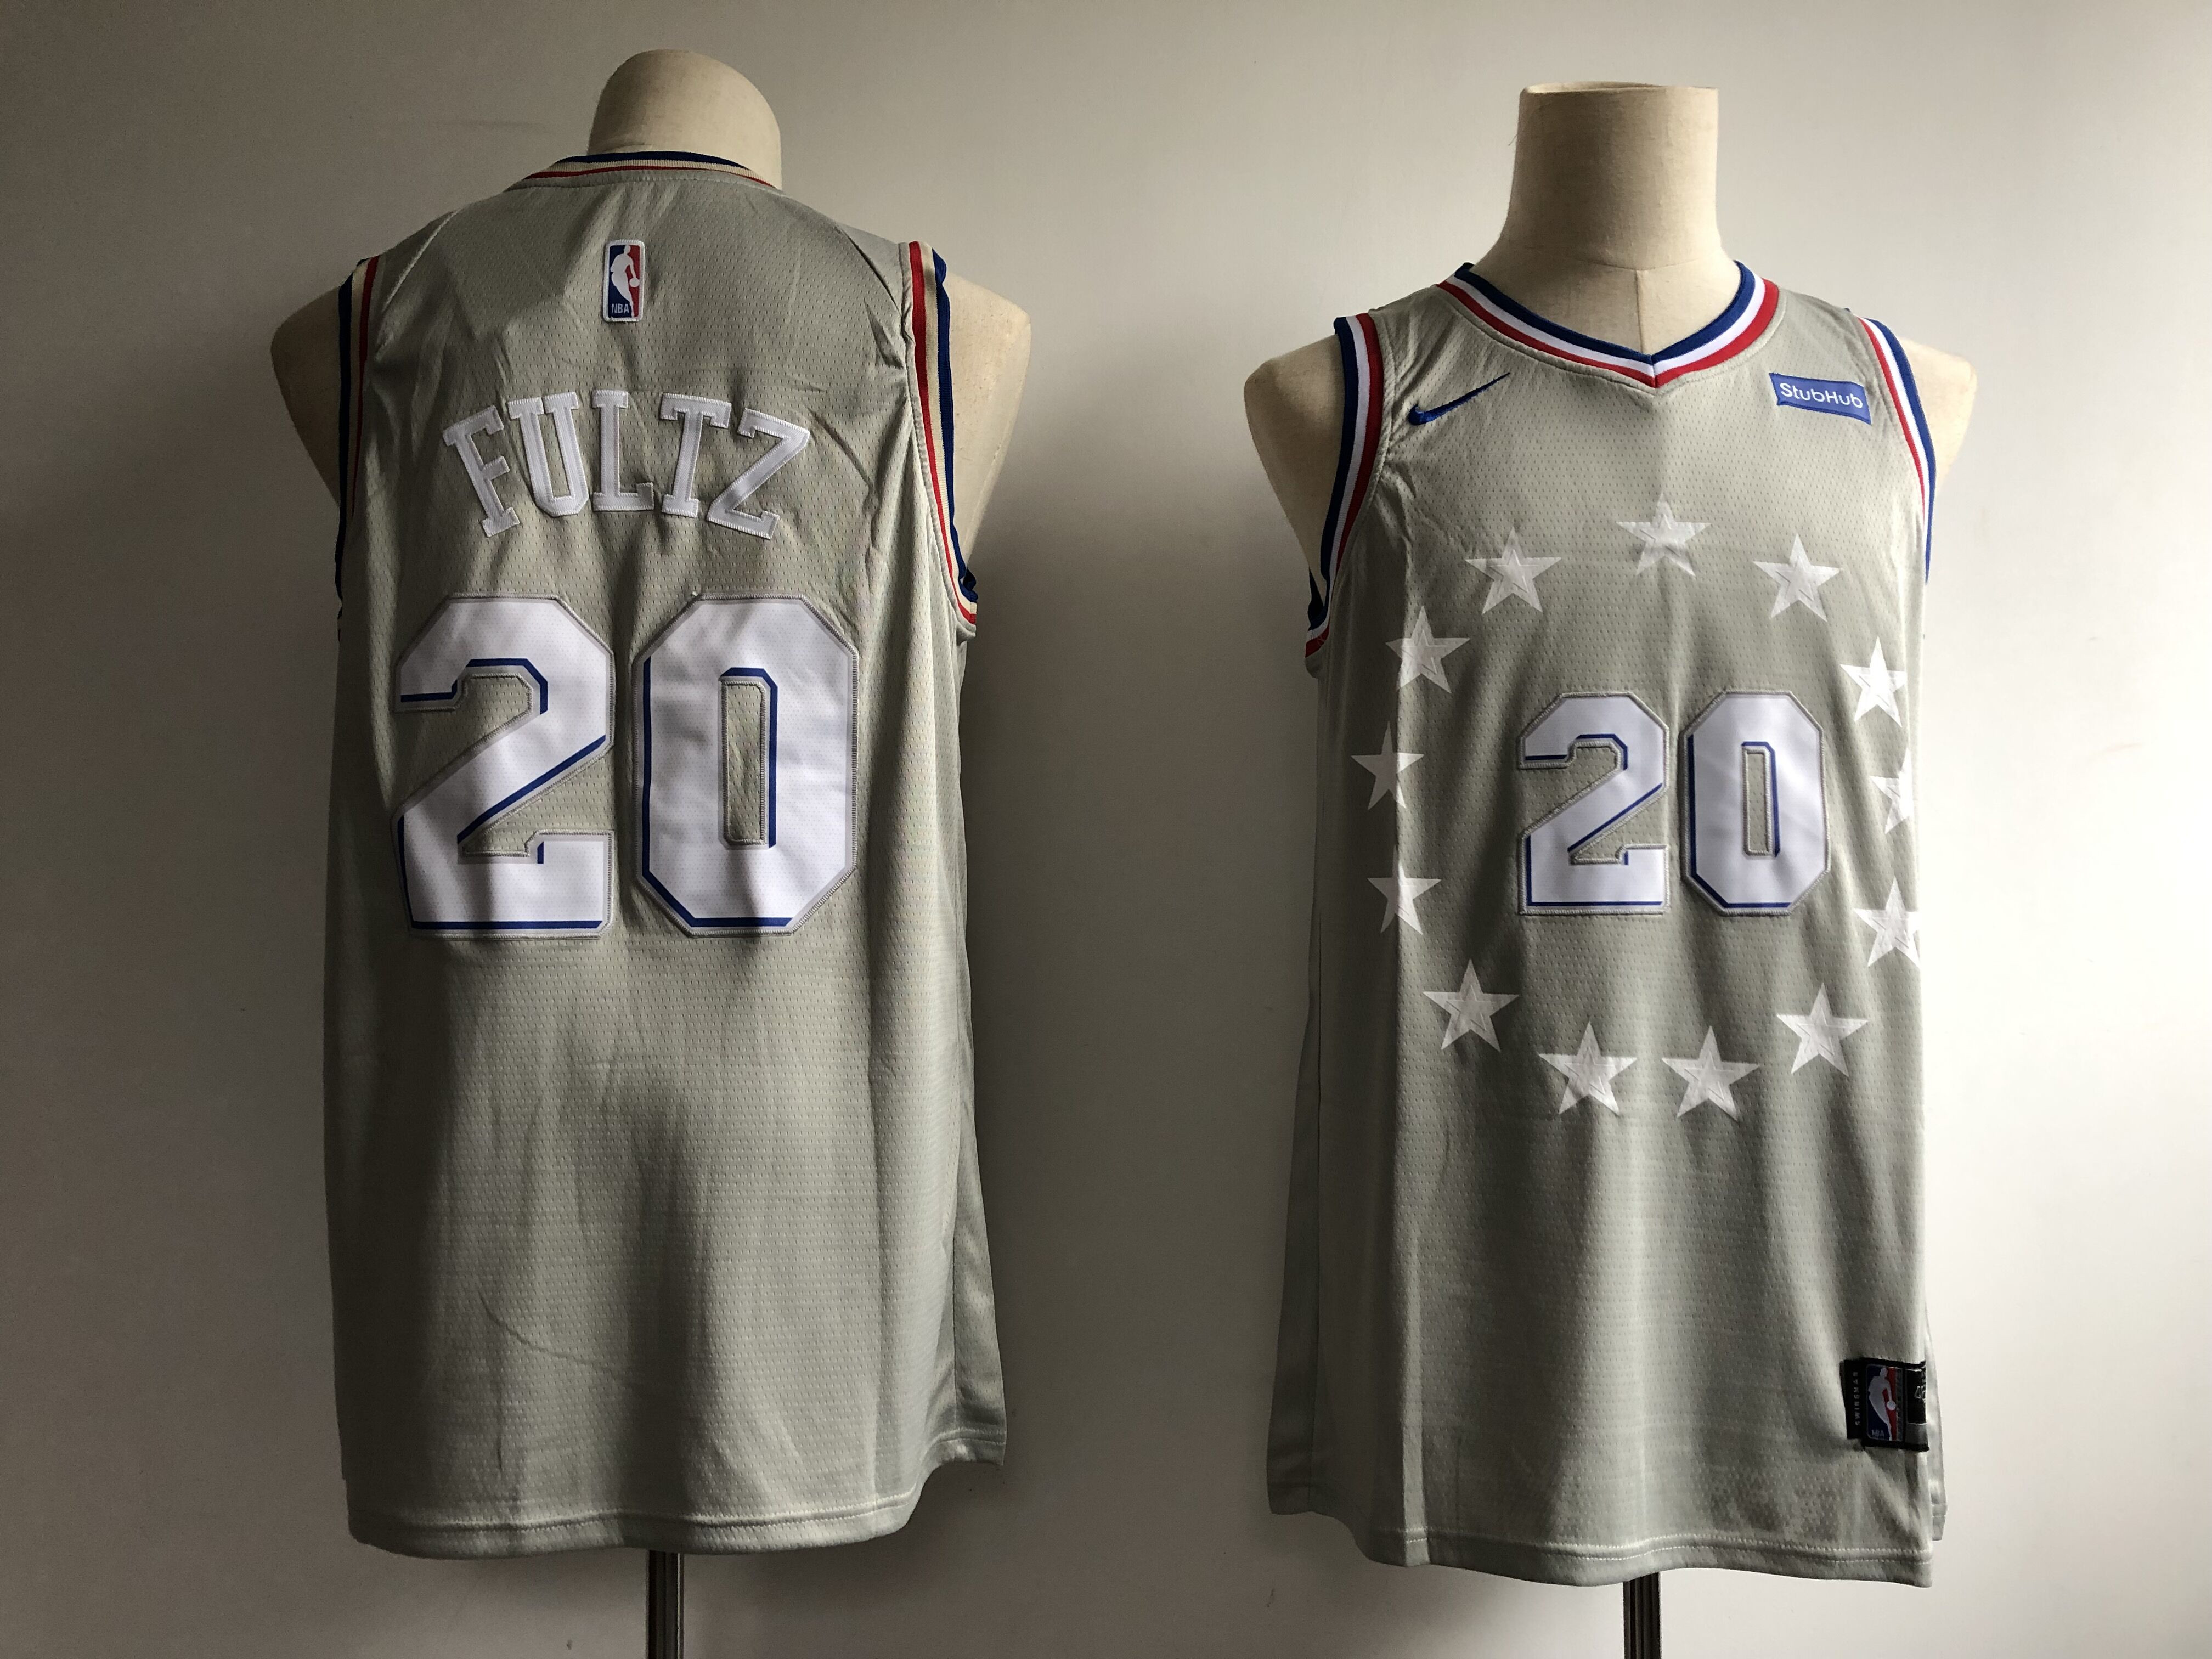 76ers 20 Markelle FultzGray 2018-19 City Edition Nike Swingman Jersey